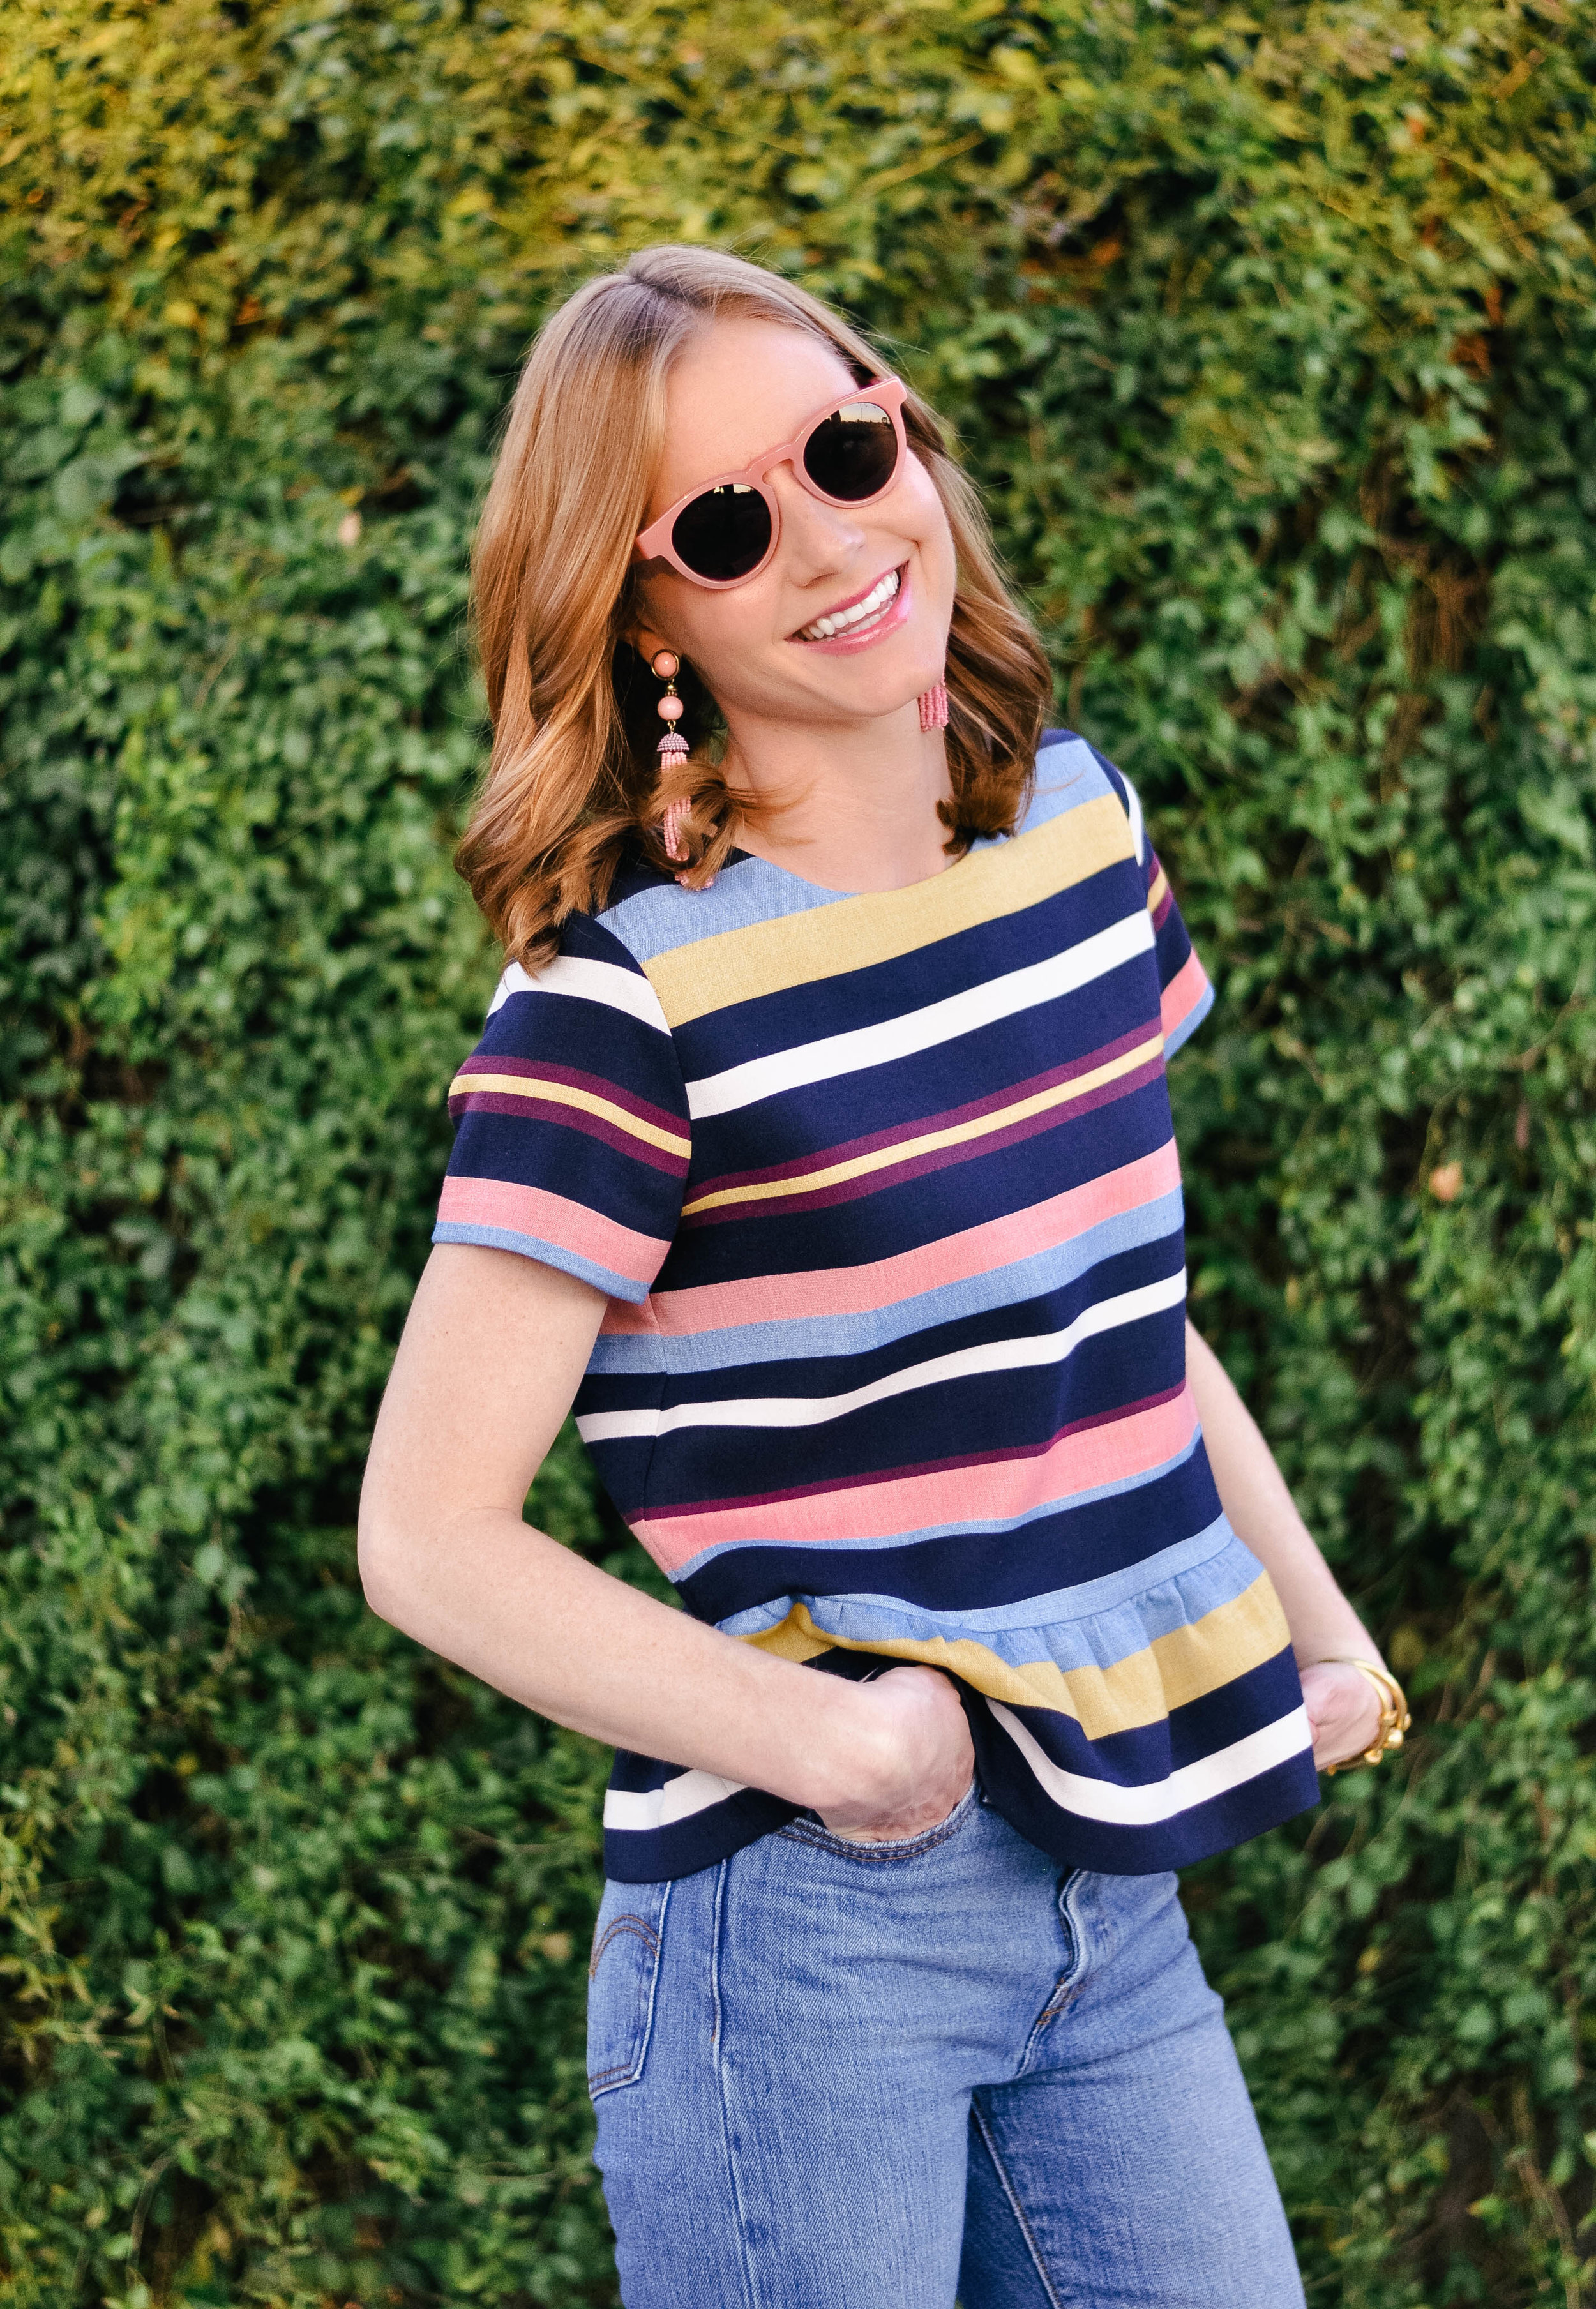 Women's Pink Suglasses with Cute Striped Top